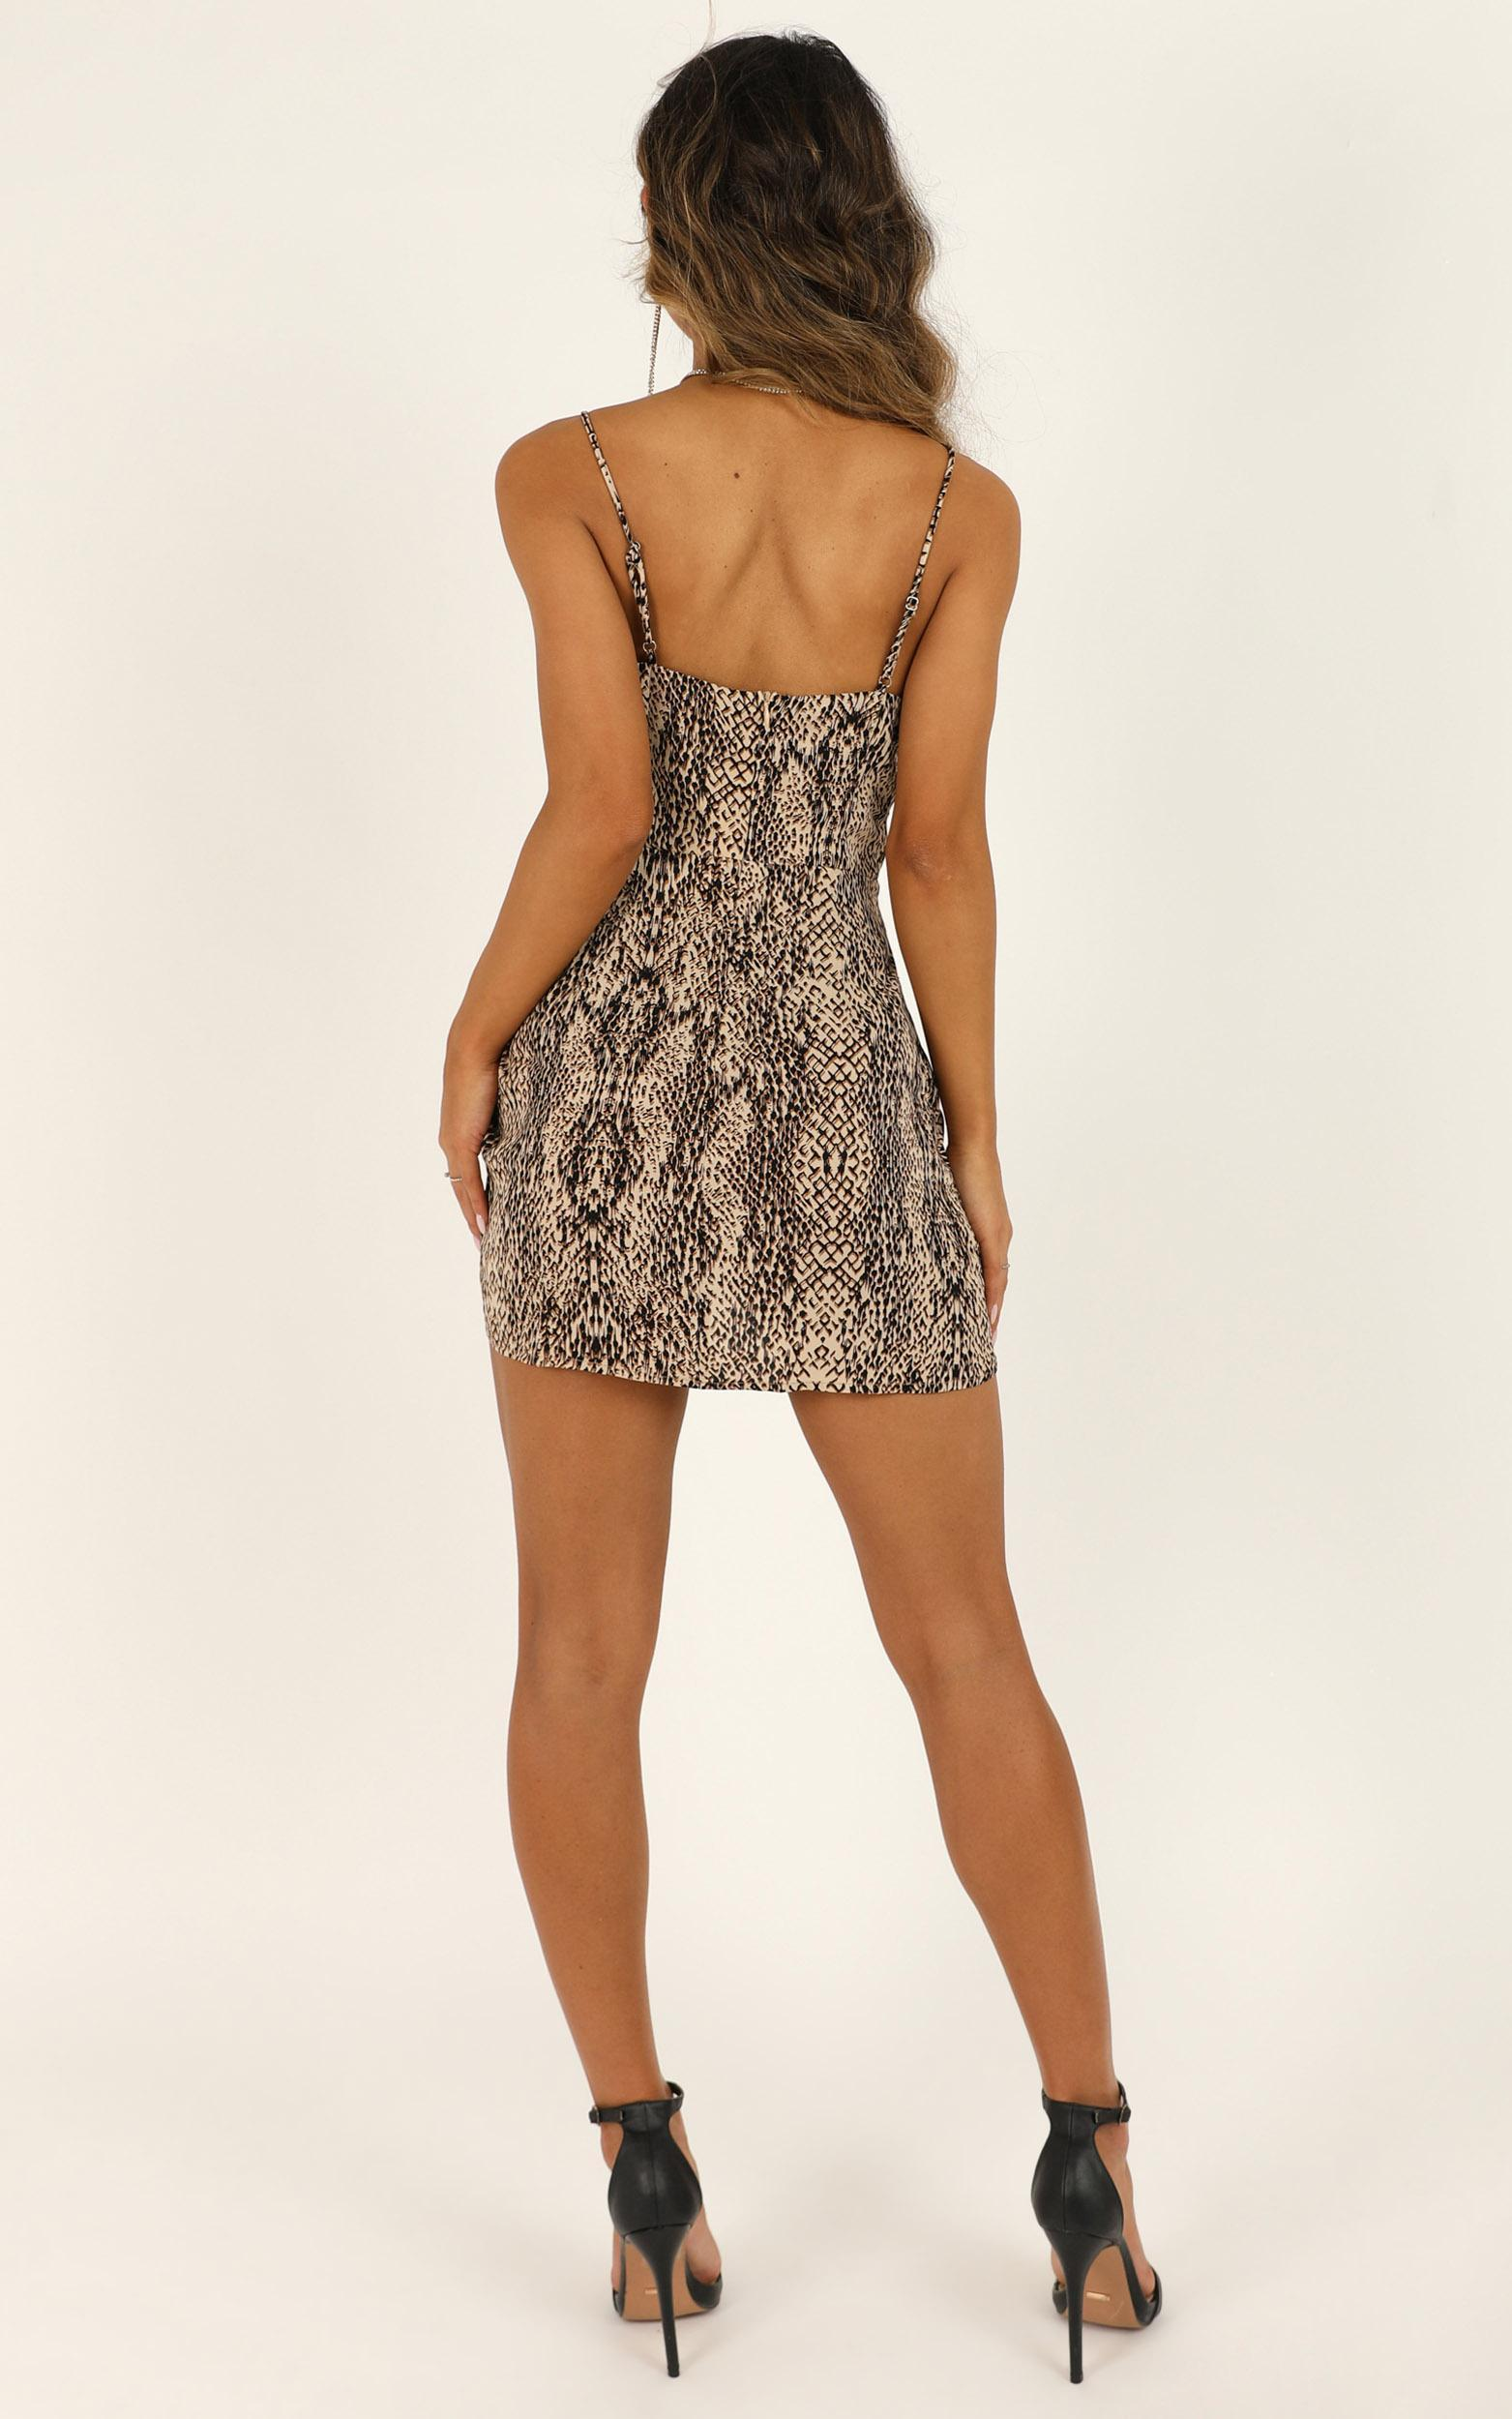 Its Ok Dress in leopard print - 12 (L), Brown, hi-res image number null